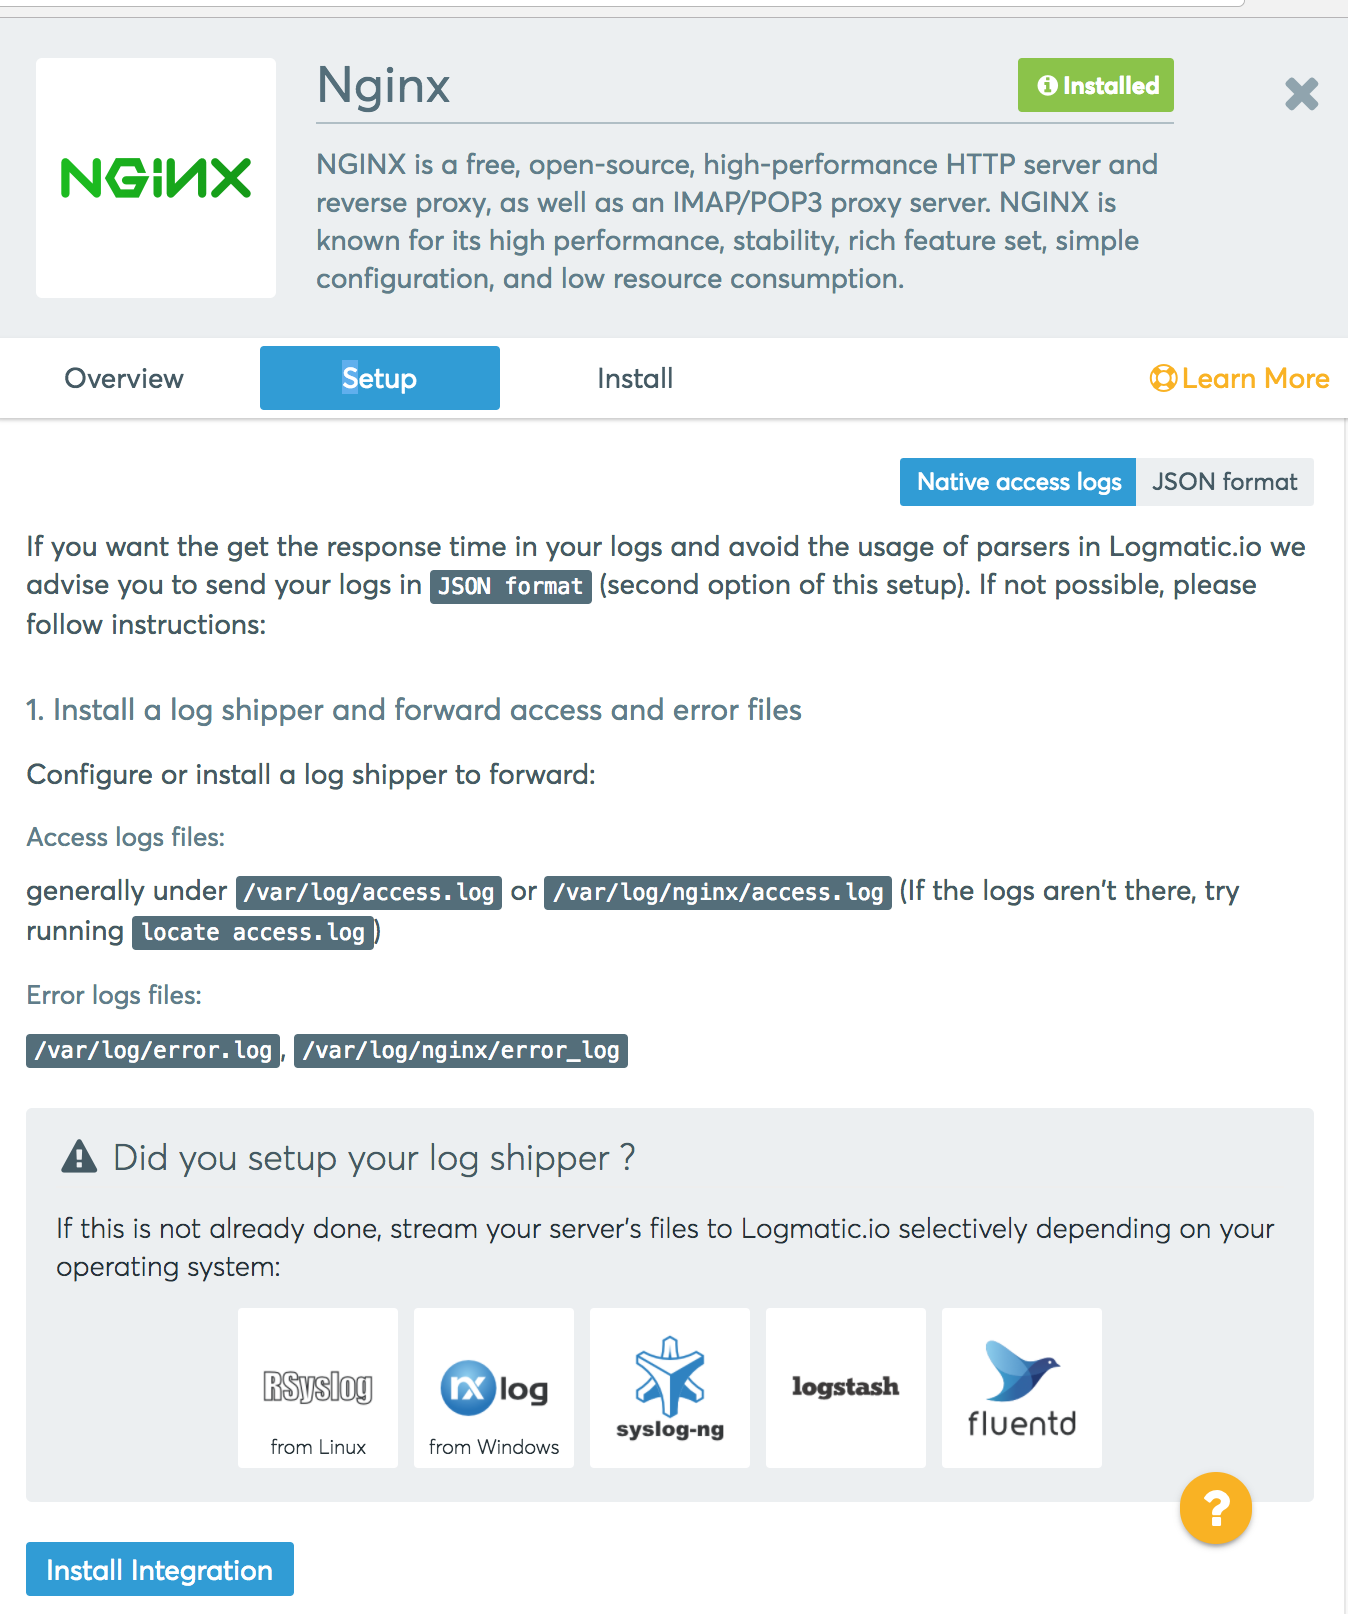 NGINX: Native access logs setup